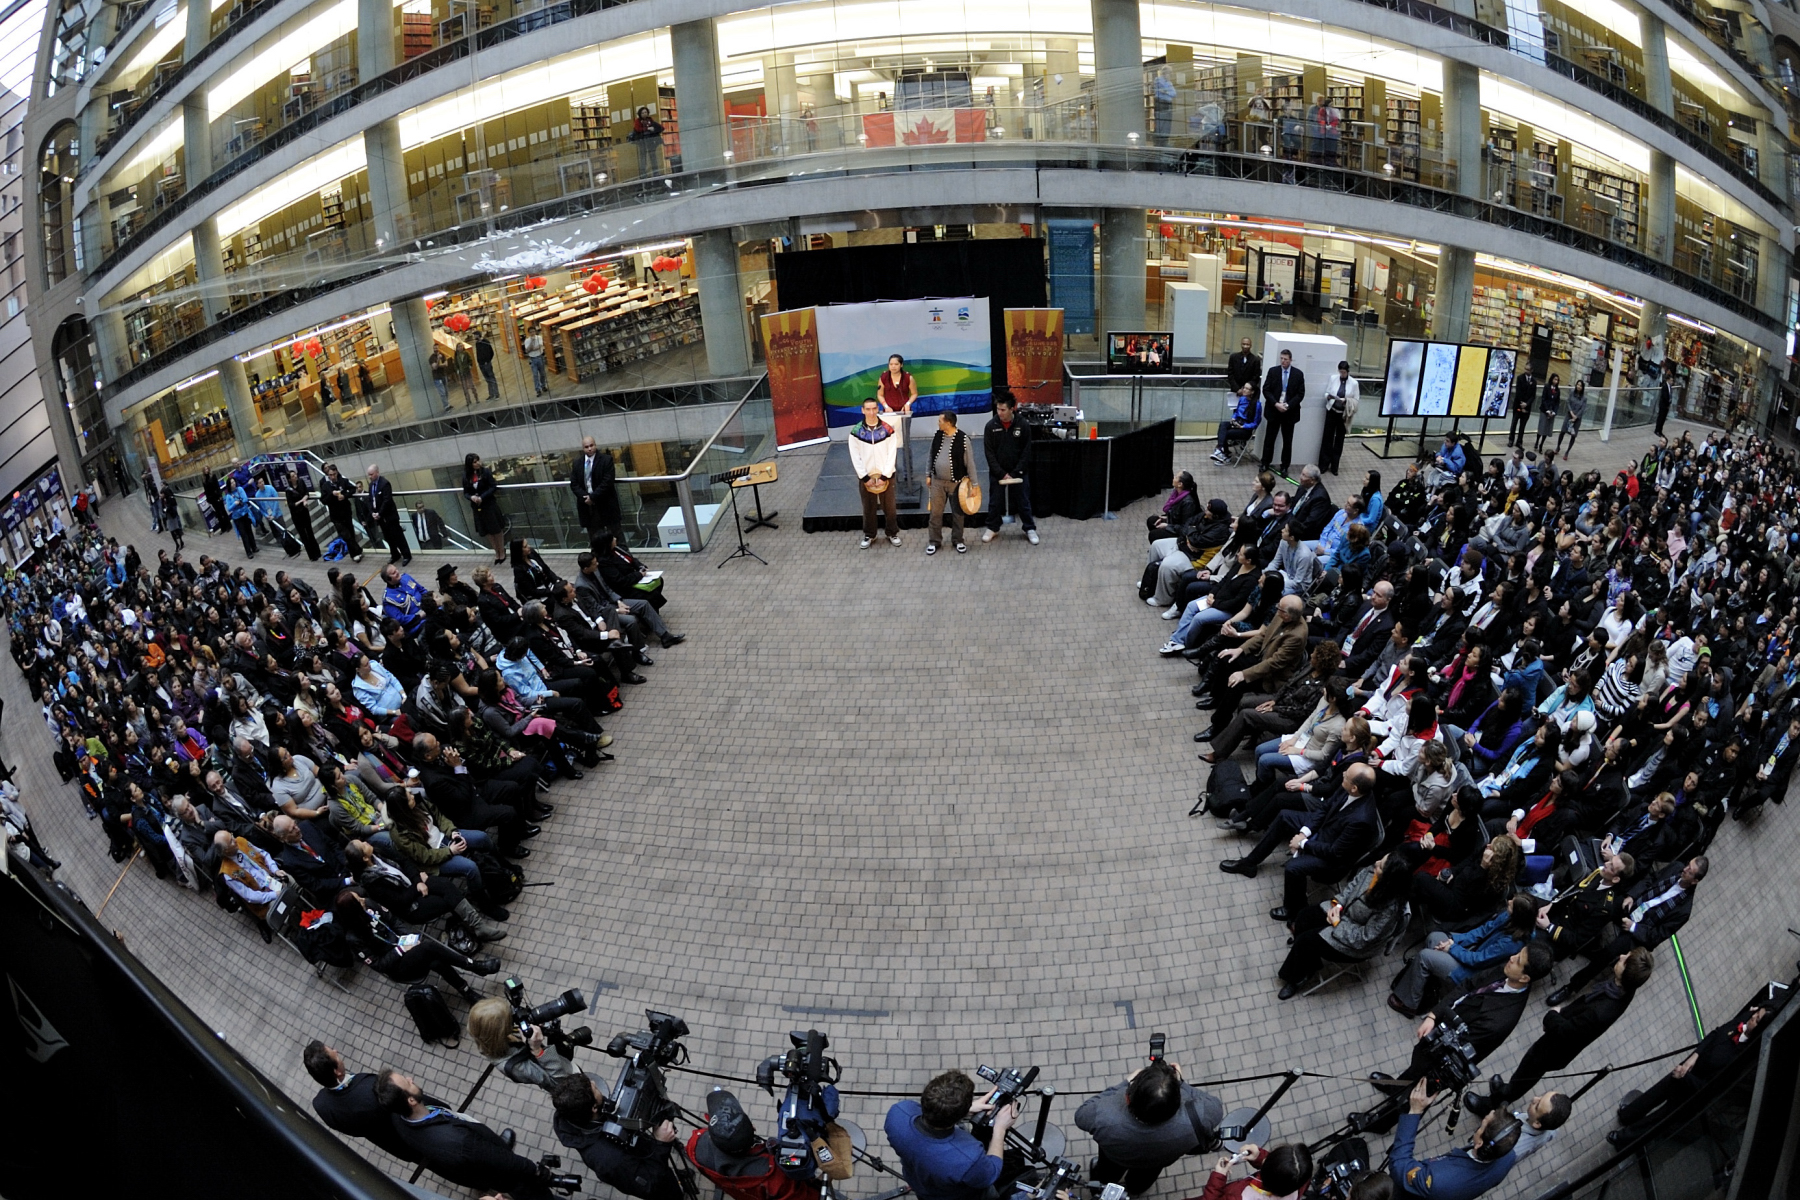 The intercultural dialogue was presented as part of the Vancouver 2010 Indigenous Youth Gathering and held at the Vancouver Public Library's Central Branch on February 11, 2010.